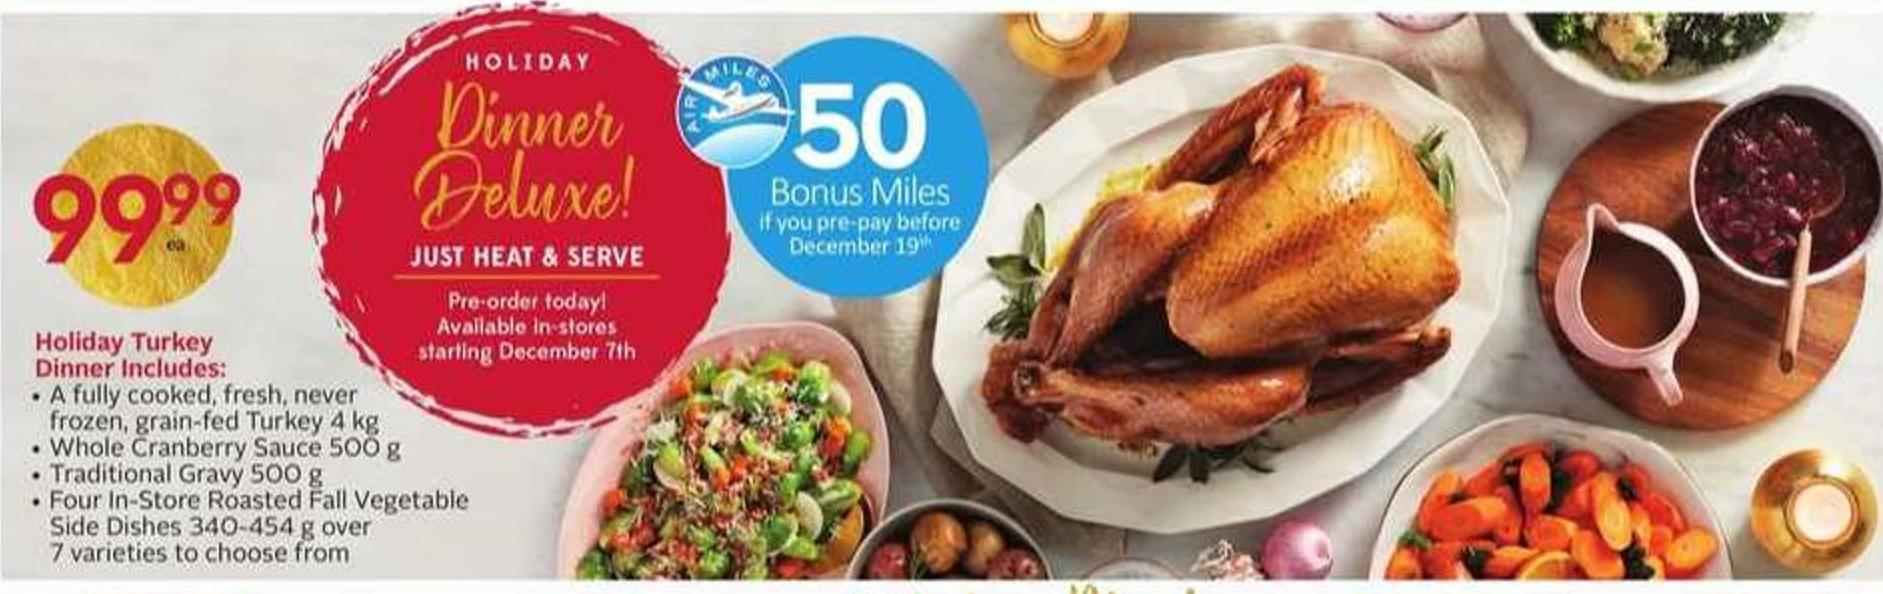 Holiday Dinner - 50 Bonus Air Miles